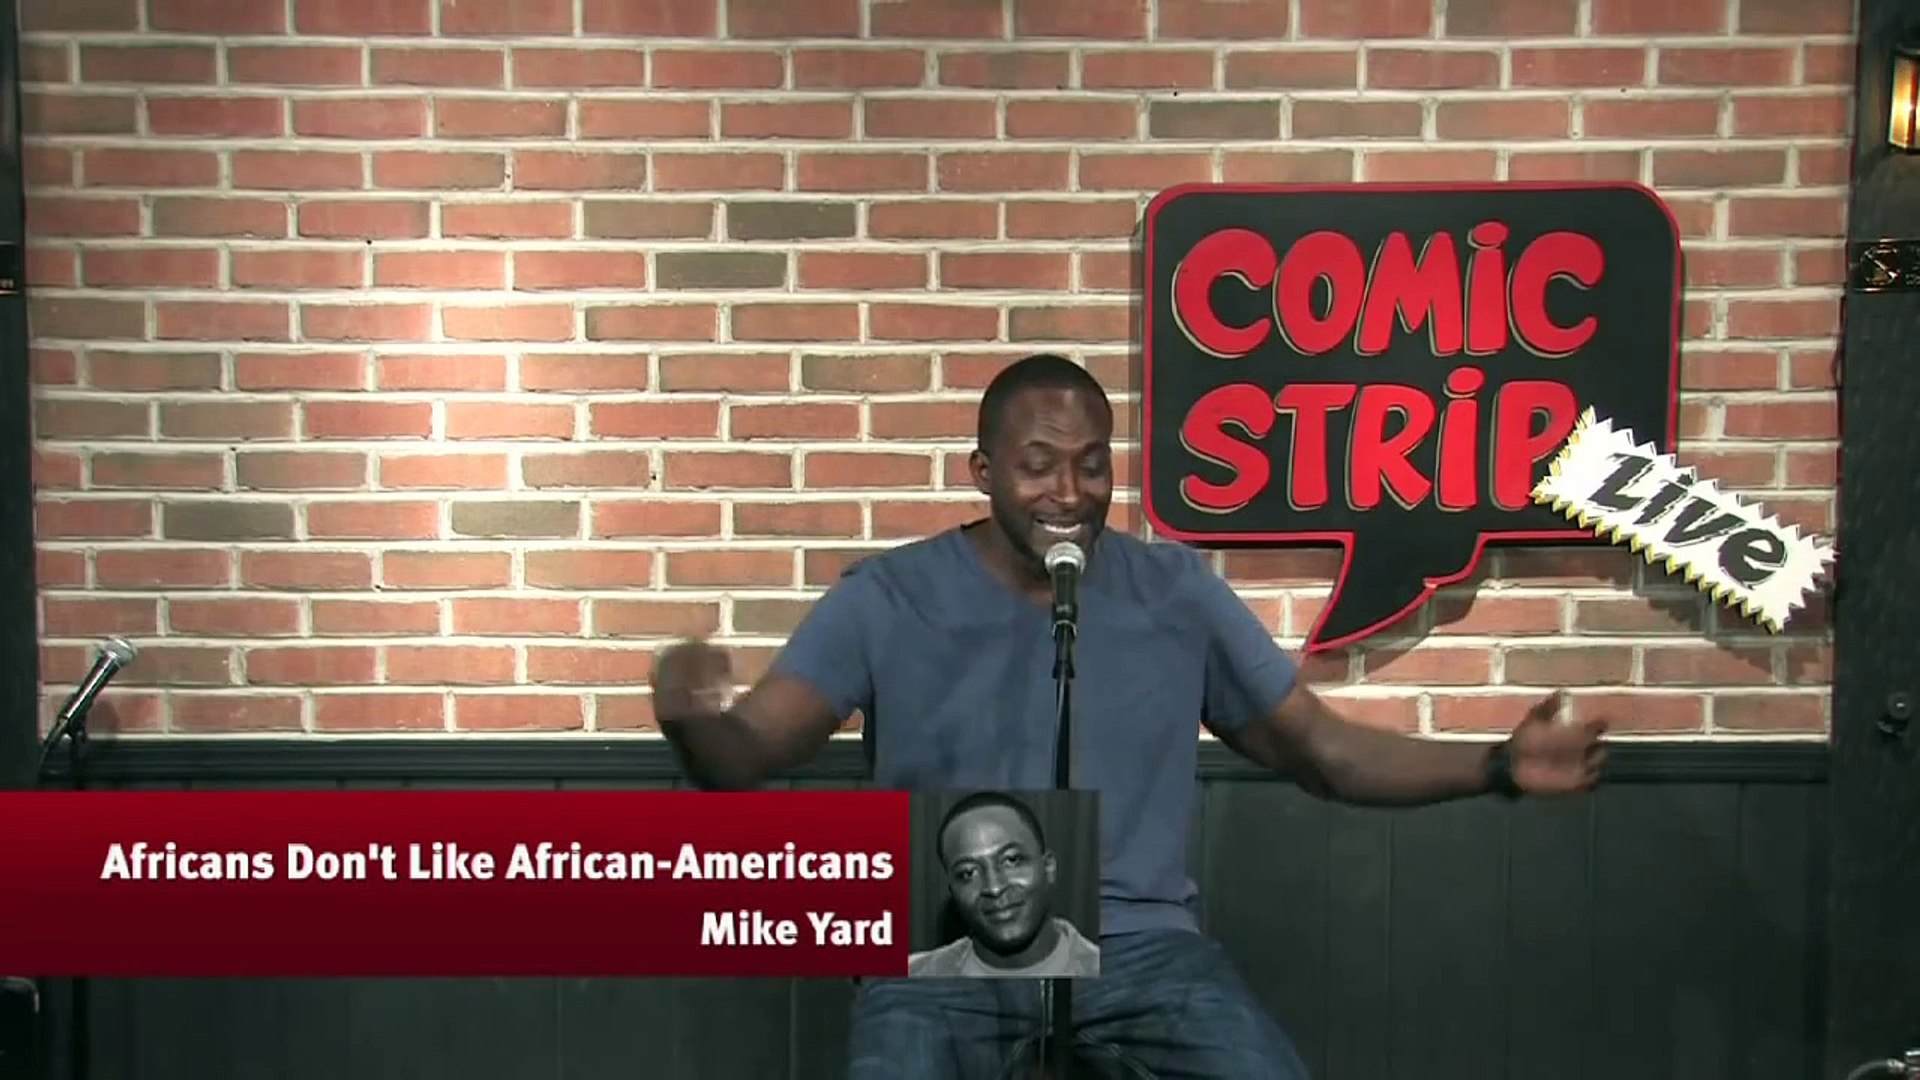 Africans Don't Like African-Americans - Mike Yard